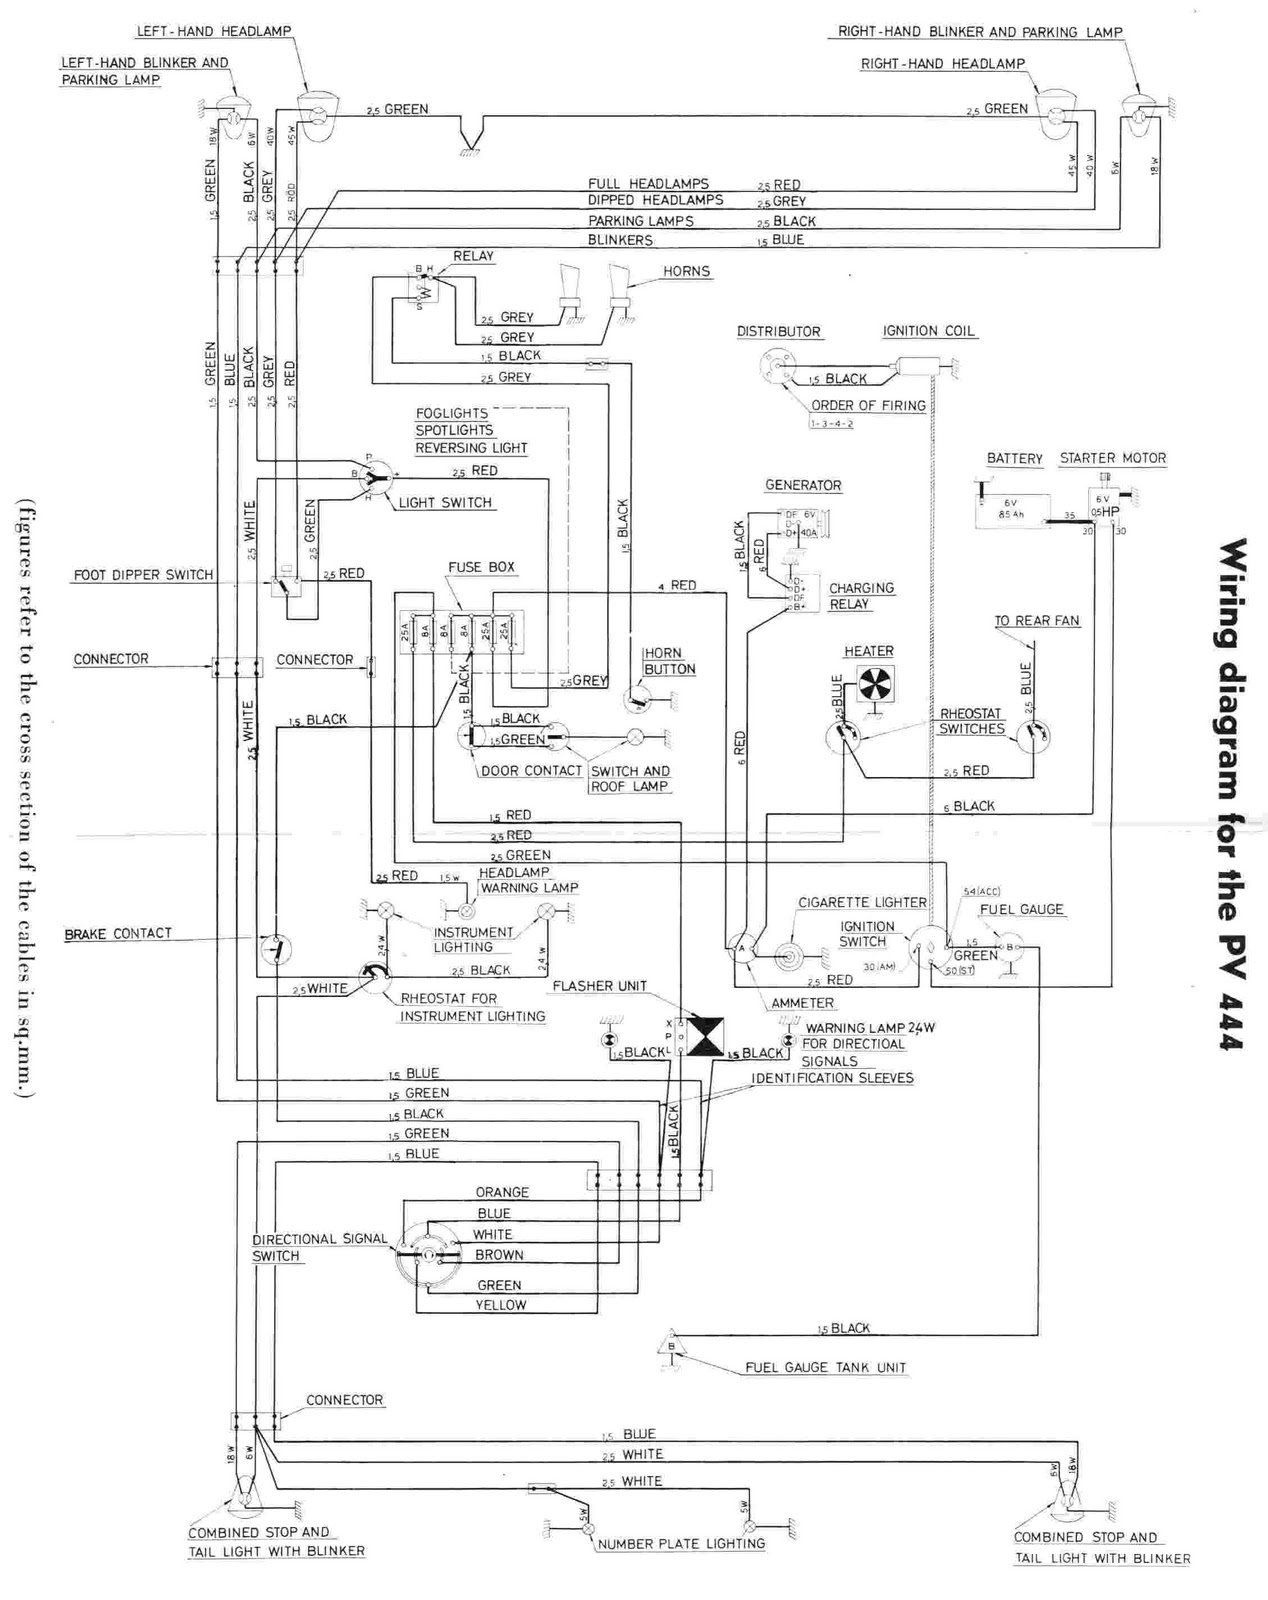 Wiring Diagram Of Volvo Pv444